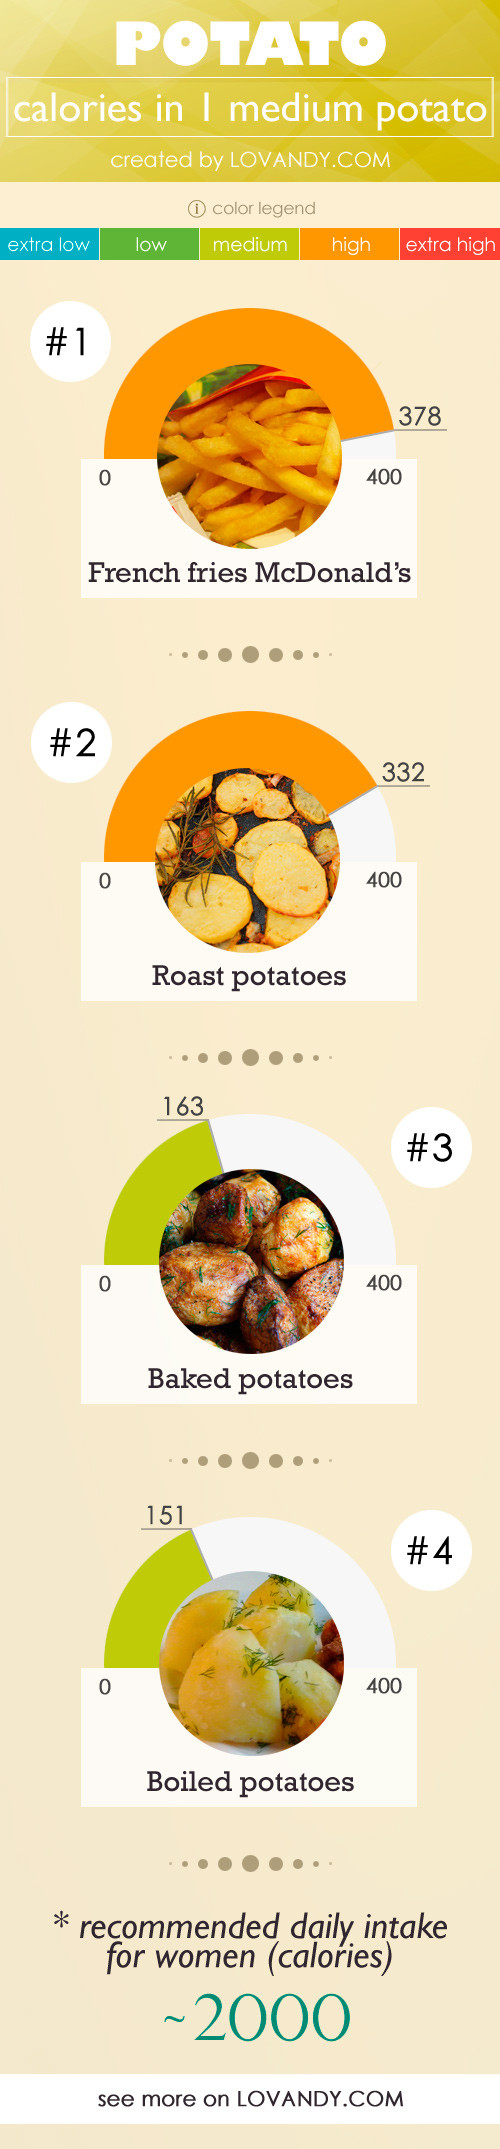 How Many Calories Are In A Baked Potato  Potato Calories Baked Mashed Roast per 1 potato 100g